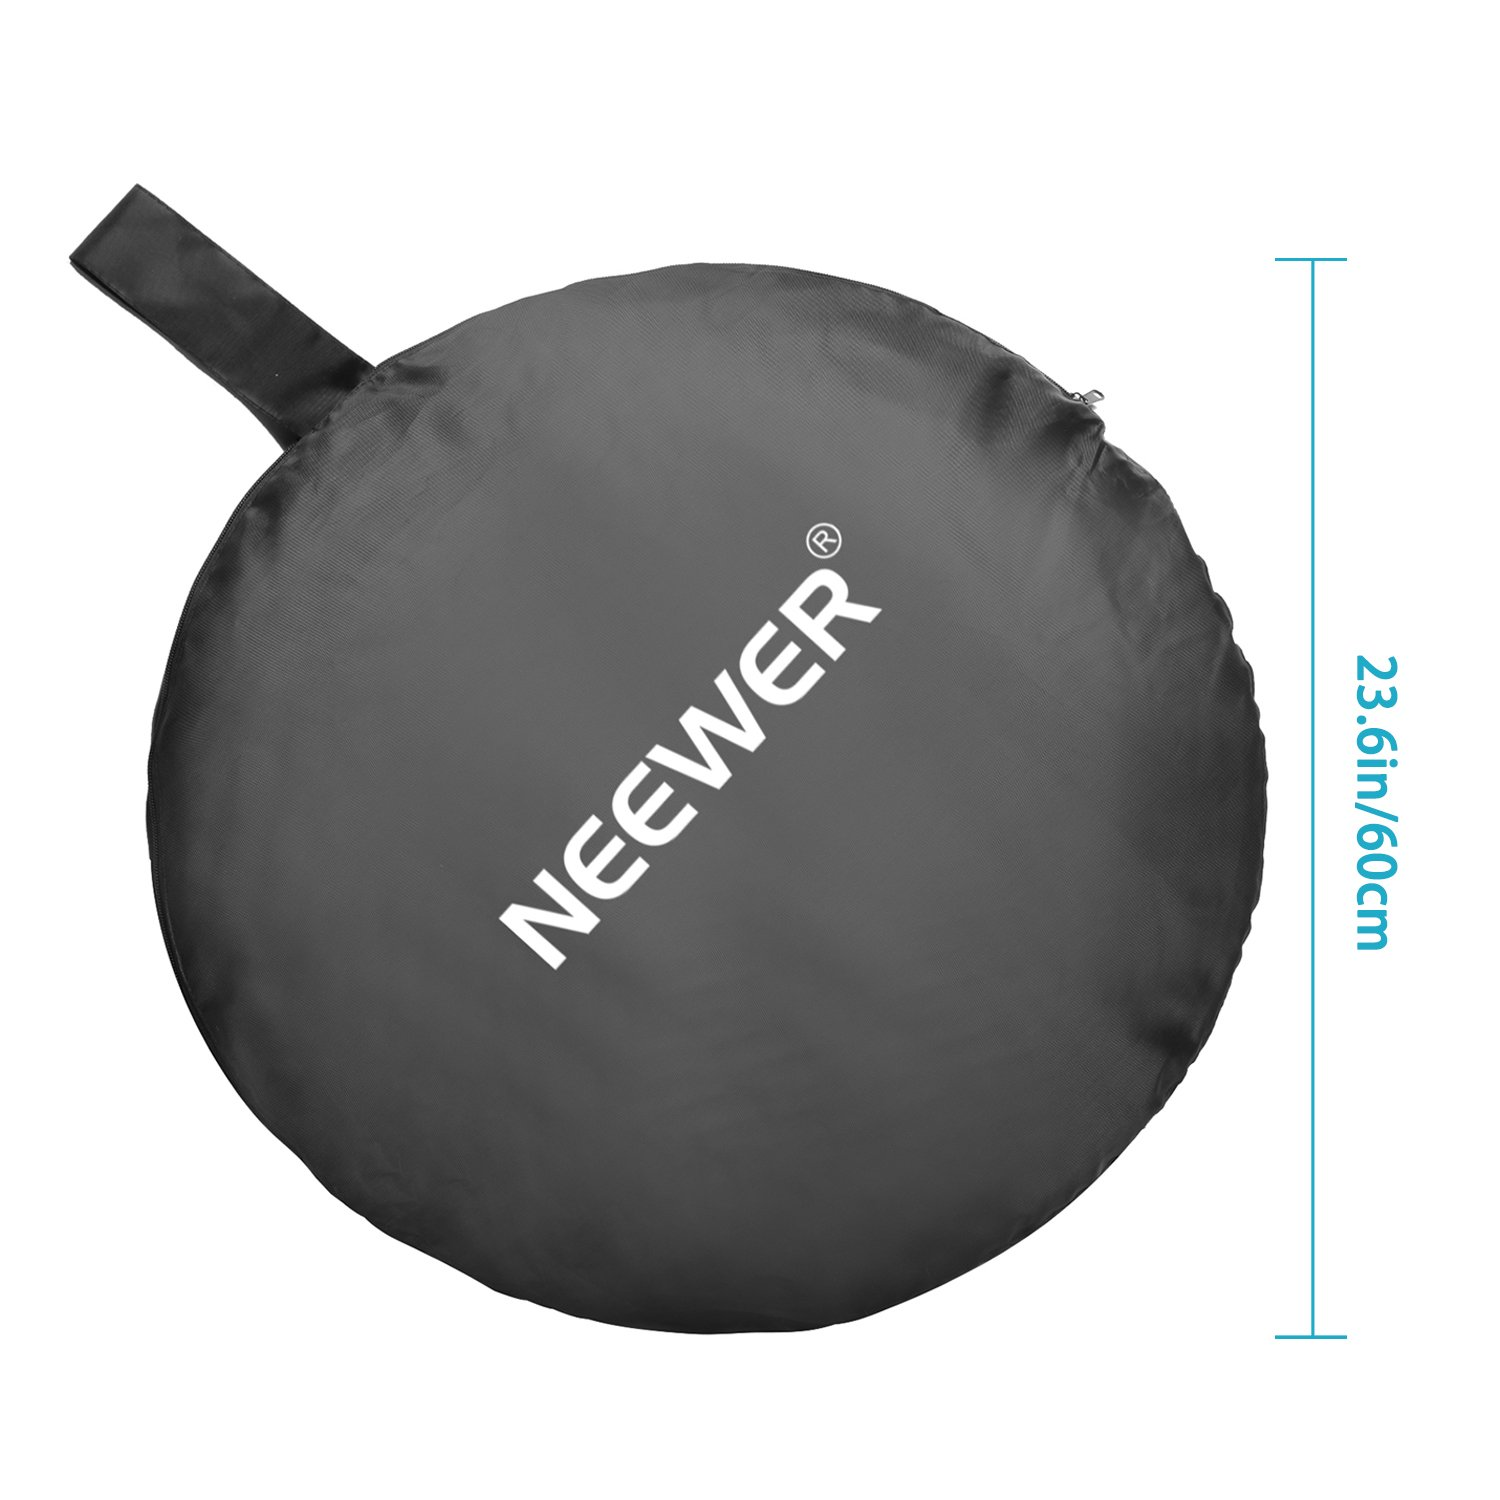 Neewer Photography Studio Lighting Reflector Pop-out Foldable Soft Diffuser Disc Panel with Carrying Case for Studio and Outdoor Portrait, Product Photography,Video Shooting (47 x 71 inches) by Neewer (Image #4)